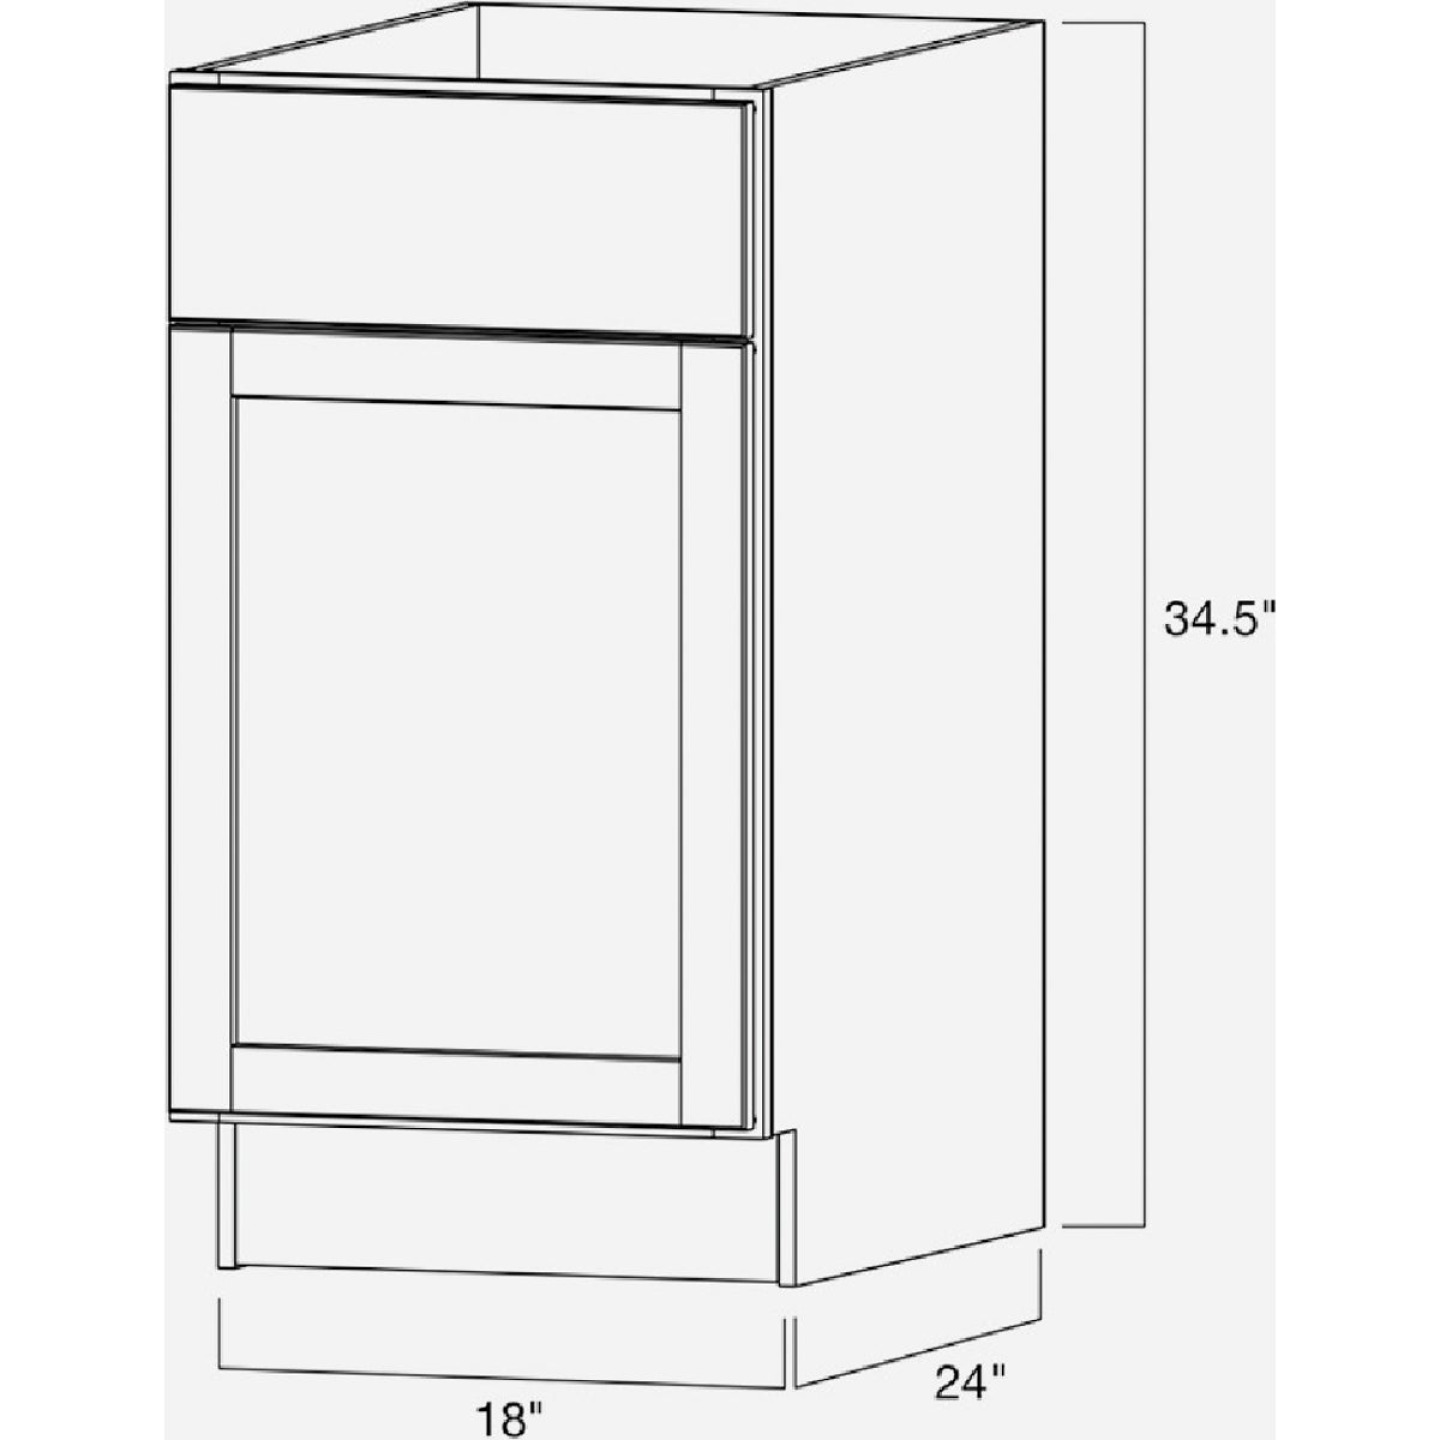 Continental Cabinets Andover Shaker 18 In. W x 34 In. H x 24 In. D White Thermofoil Base Kitchen Cabinet Image 4